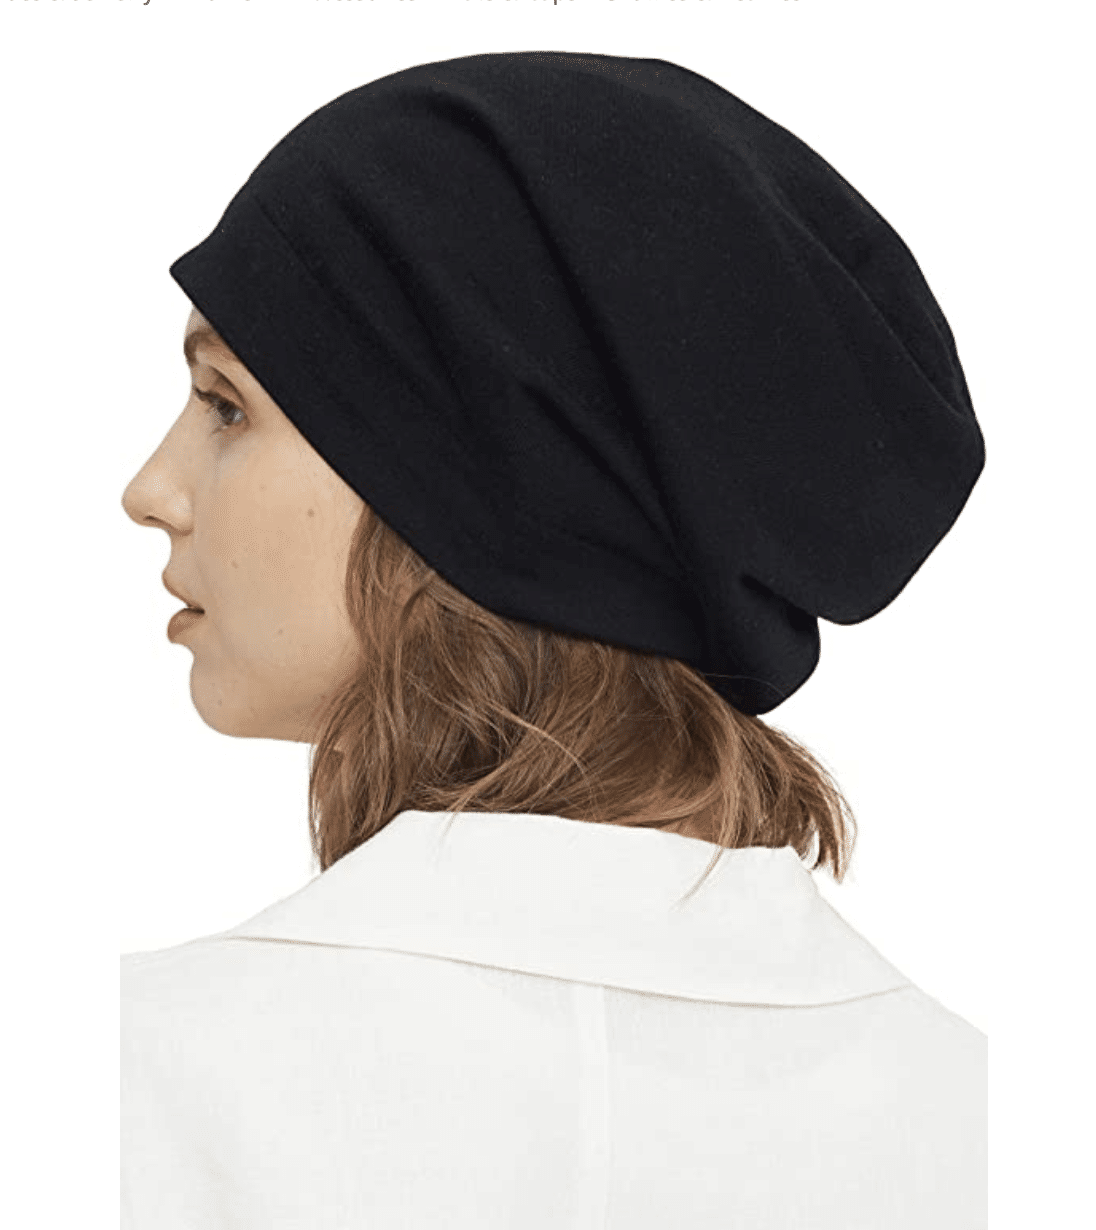 stocking-stuffers-for-women-beanie